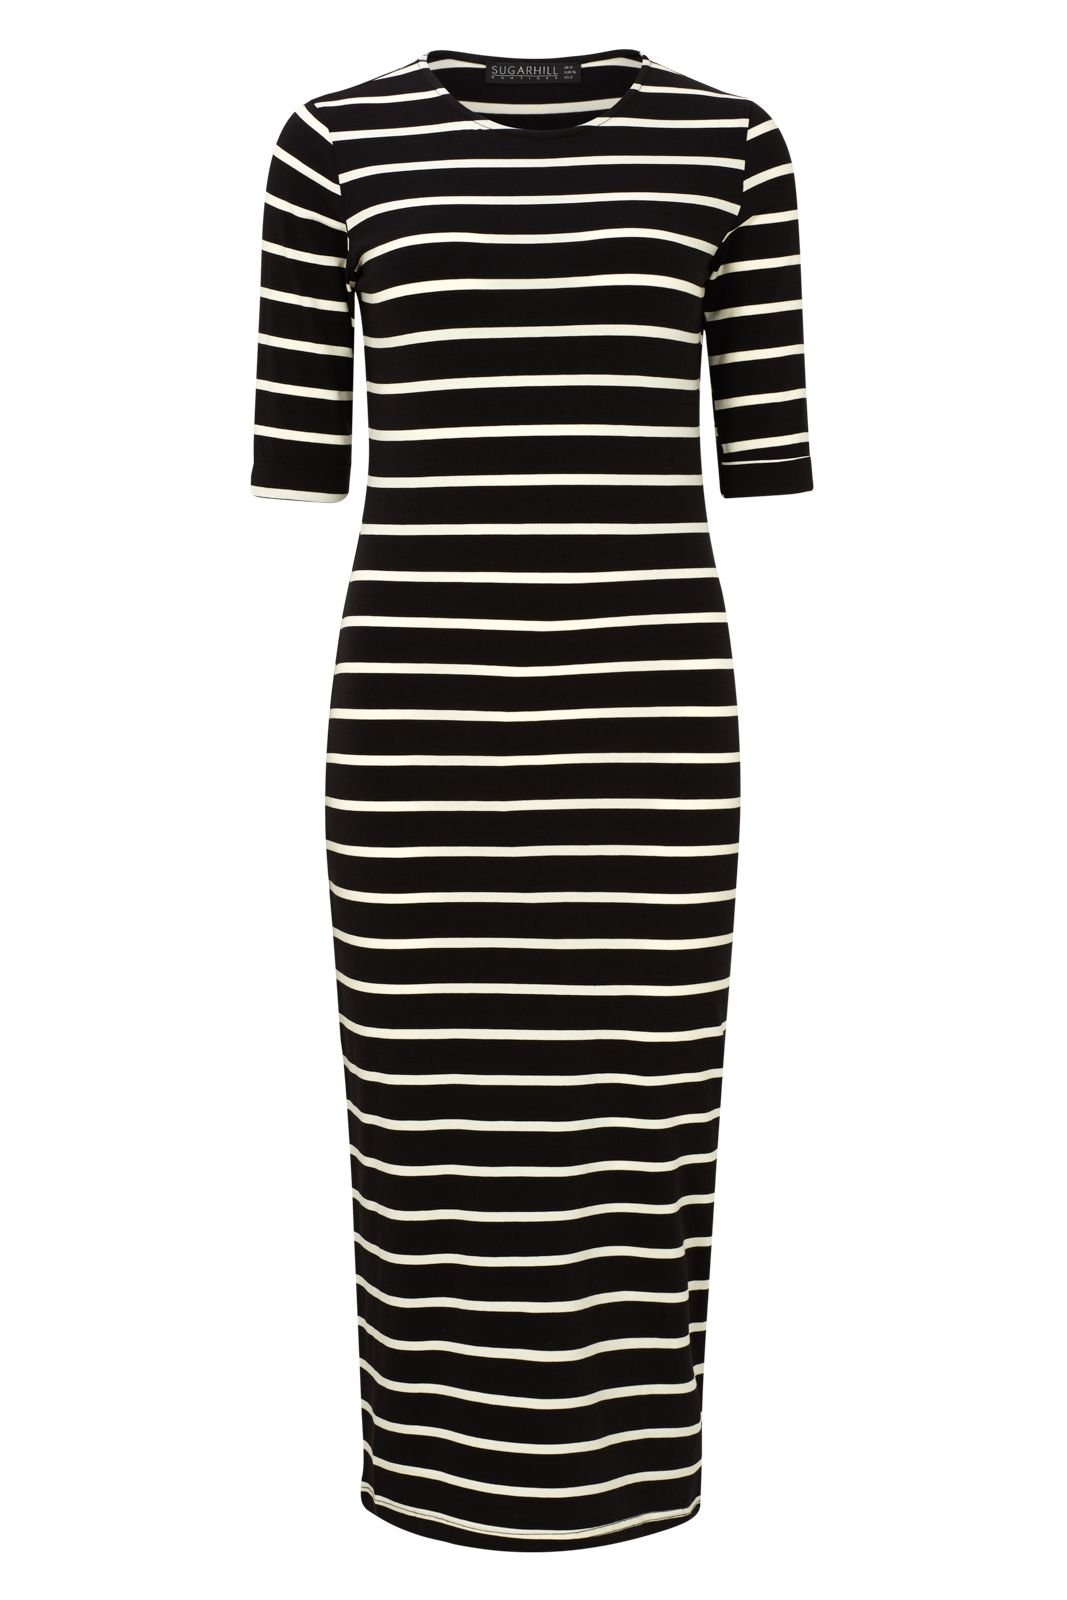 Sugarhill Boutique OCTAVIA STRIPE BODYCON, Black